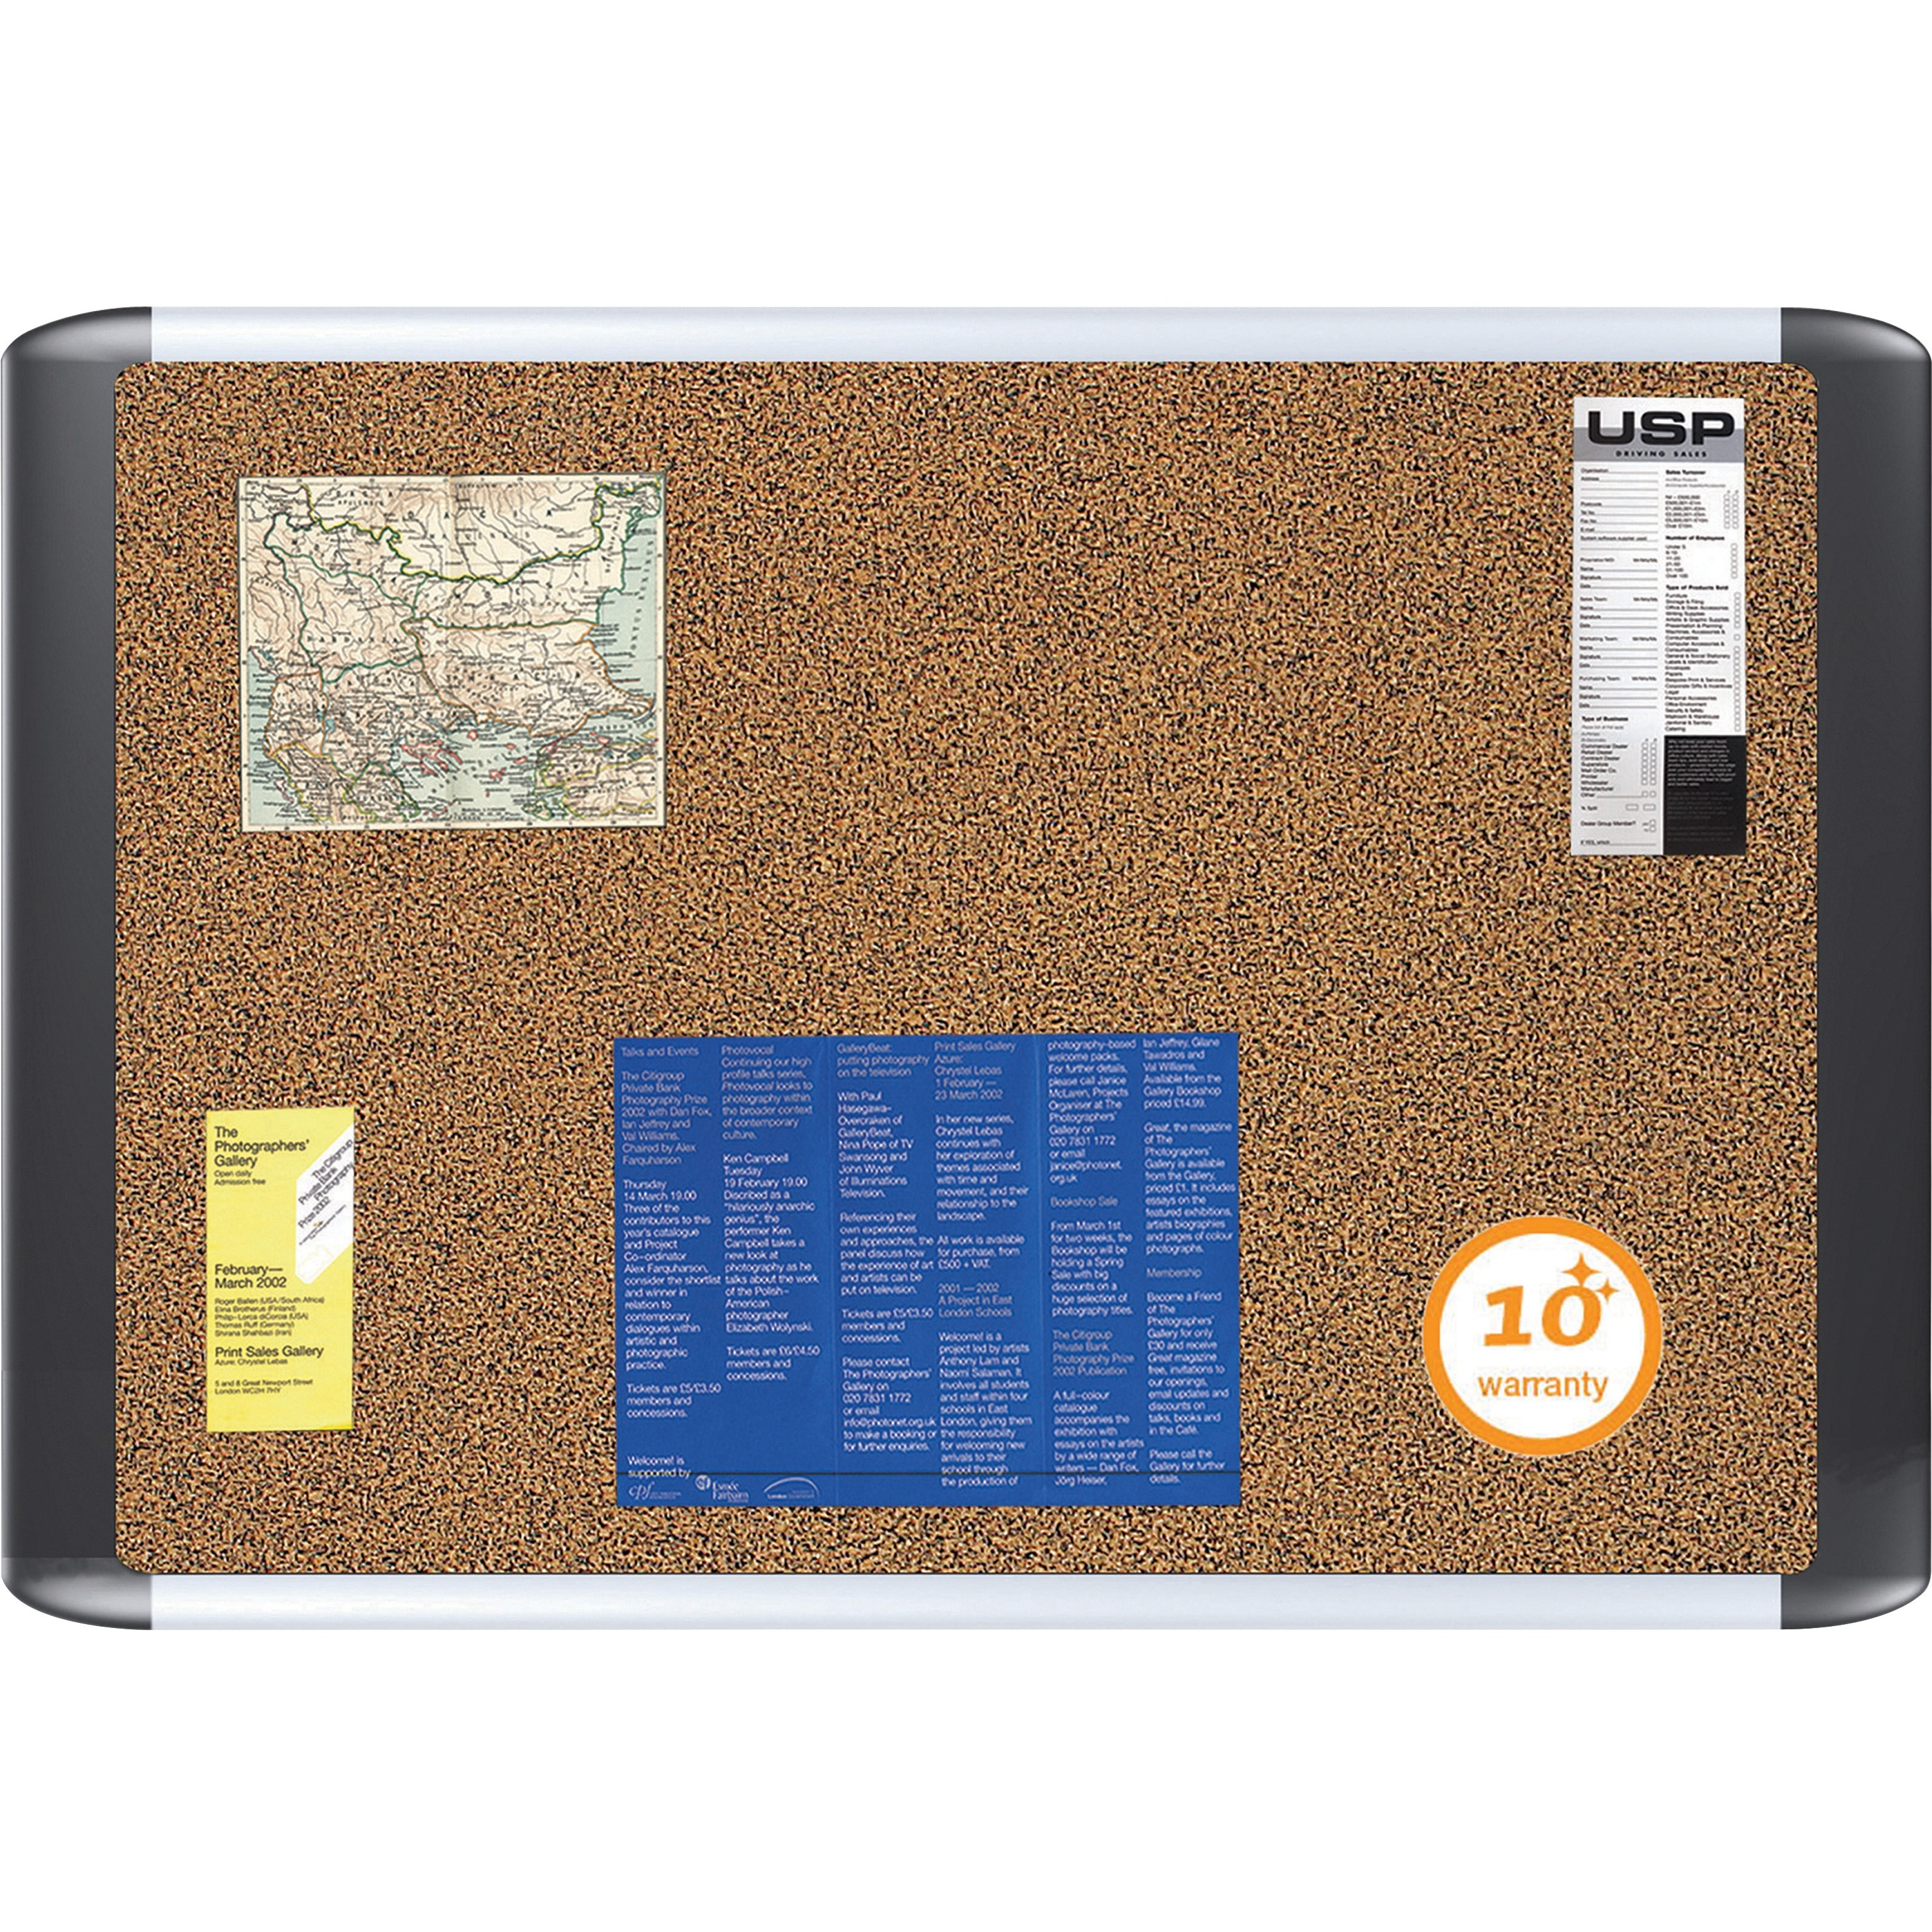 Tech Cork Board, 24x36, Silver/Black Frame